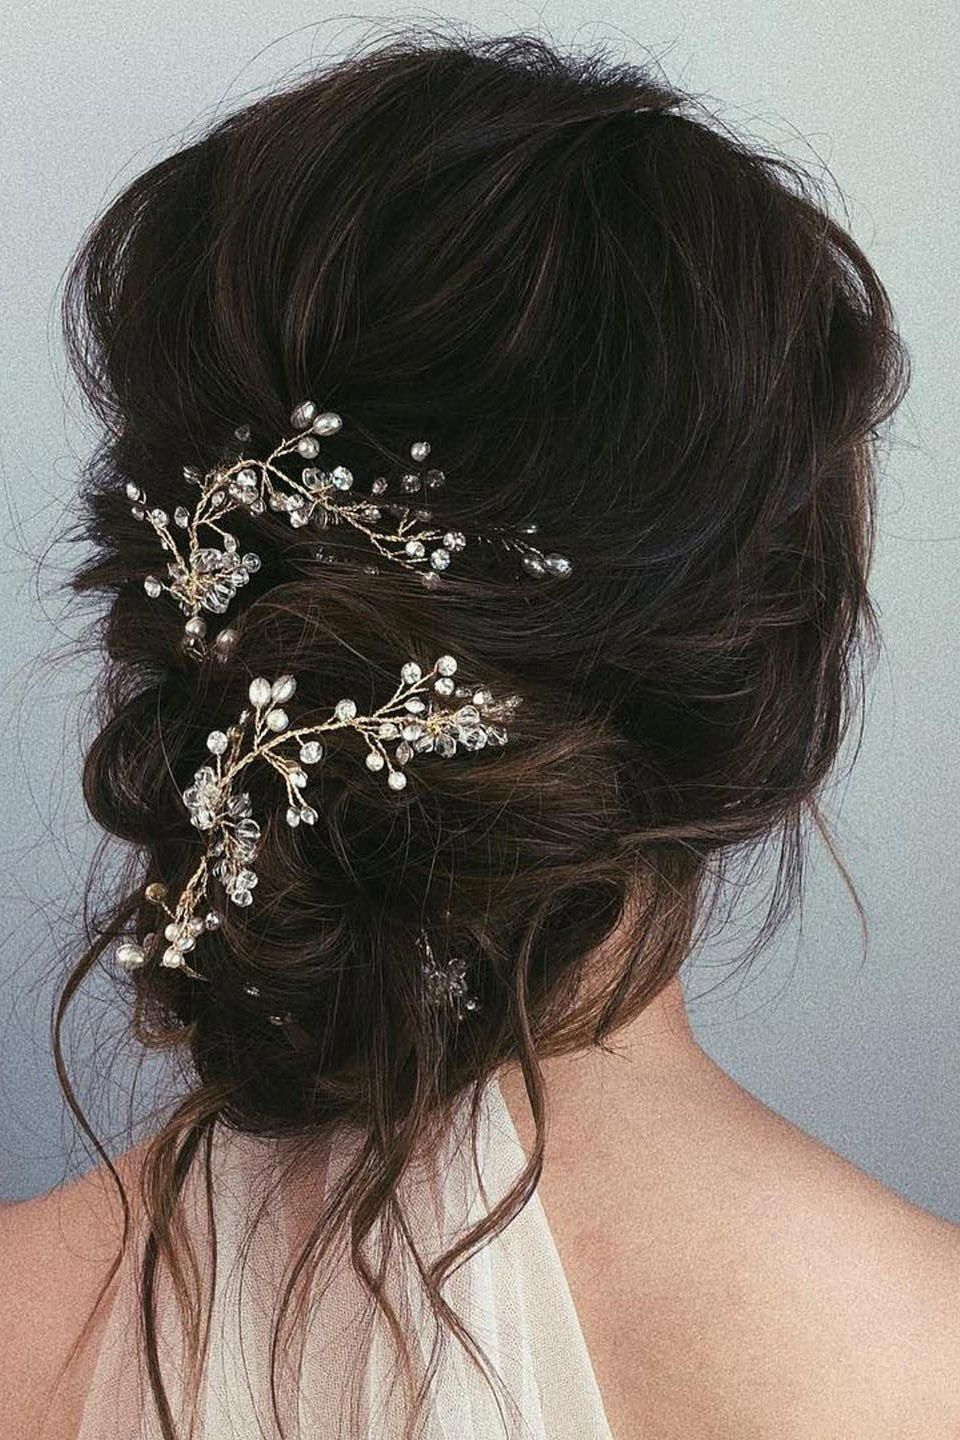 "Bridal Hairstyle. Love this loose bun with some decoration. Perfect on dark brown hair <a class=""pintag"" href=""/explore/wedding/"" title=""#wedding explore Pinterest"">#wedding</a> <a class=""pintag"" href=""/explore/weddings/"" title=""#weddings explore Pinterest"">#weddings</a> <a class=""pintag"" href=""/explore/inspiration/"" title=""#inspiration explore Pinterest"">#inspiration</a> <a class=""pintag"" href=""/explore/ideas/"" title=""#ideas explore Pinterest"">#ideas</a> Catherine Kentridge, Celebrant <a class=""pintag"" href=""/explore/uniqueweddinghairstyles/"" title=""#uniqueweddinghairstyles explore Pinterest"">#uniqueweddinghairstyles</a><p><a href=""http://www.homeinteriordesign.org/2018/02/short-guide-to-interior-decoration.html"">Short guide to interior decoration</a></p>"